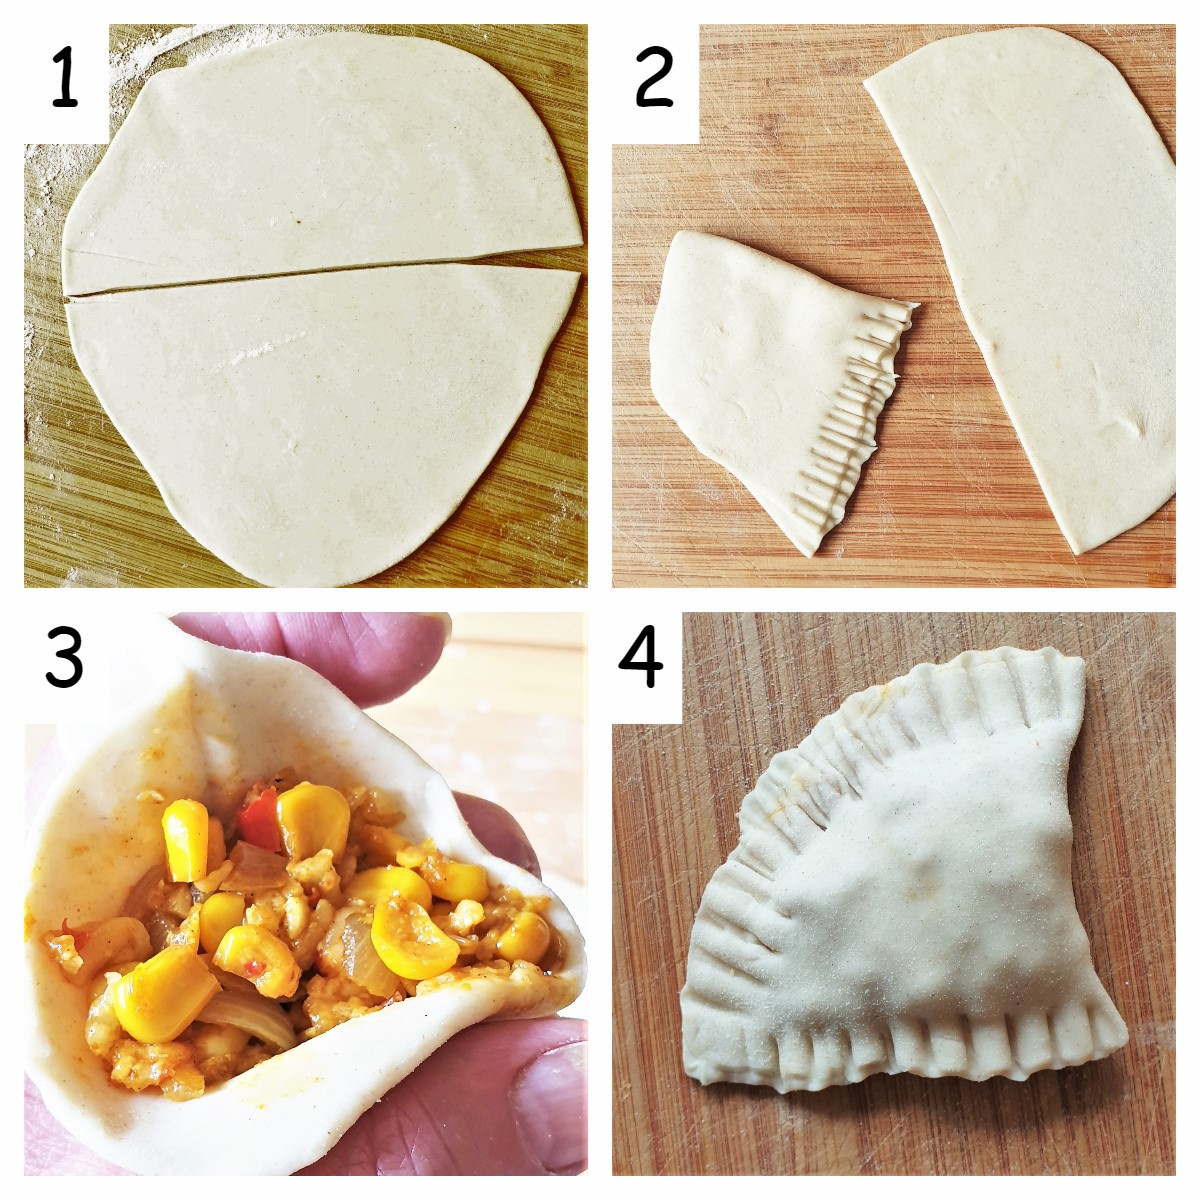 Collage of 4 images showing steps for folding samosas with homemade pastry.